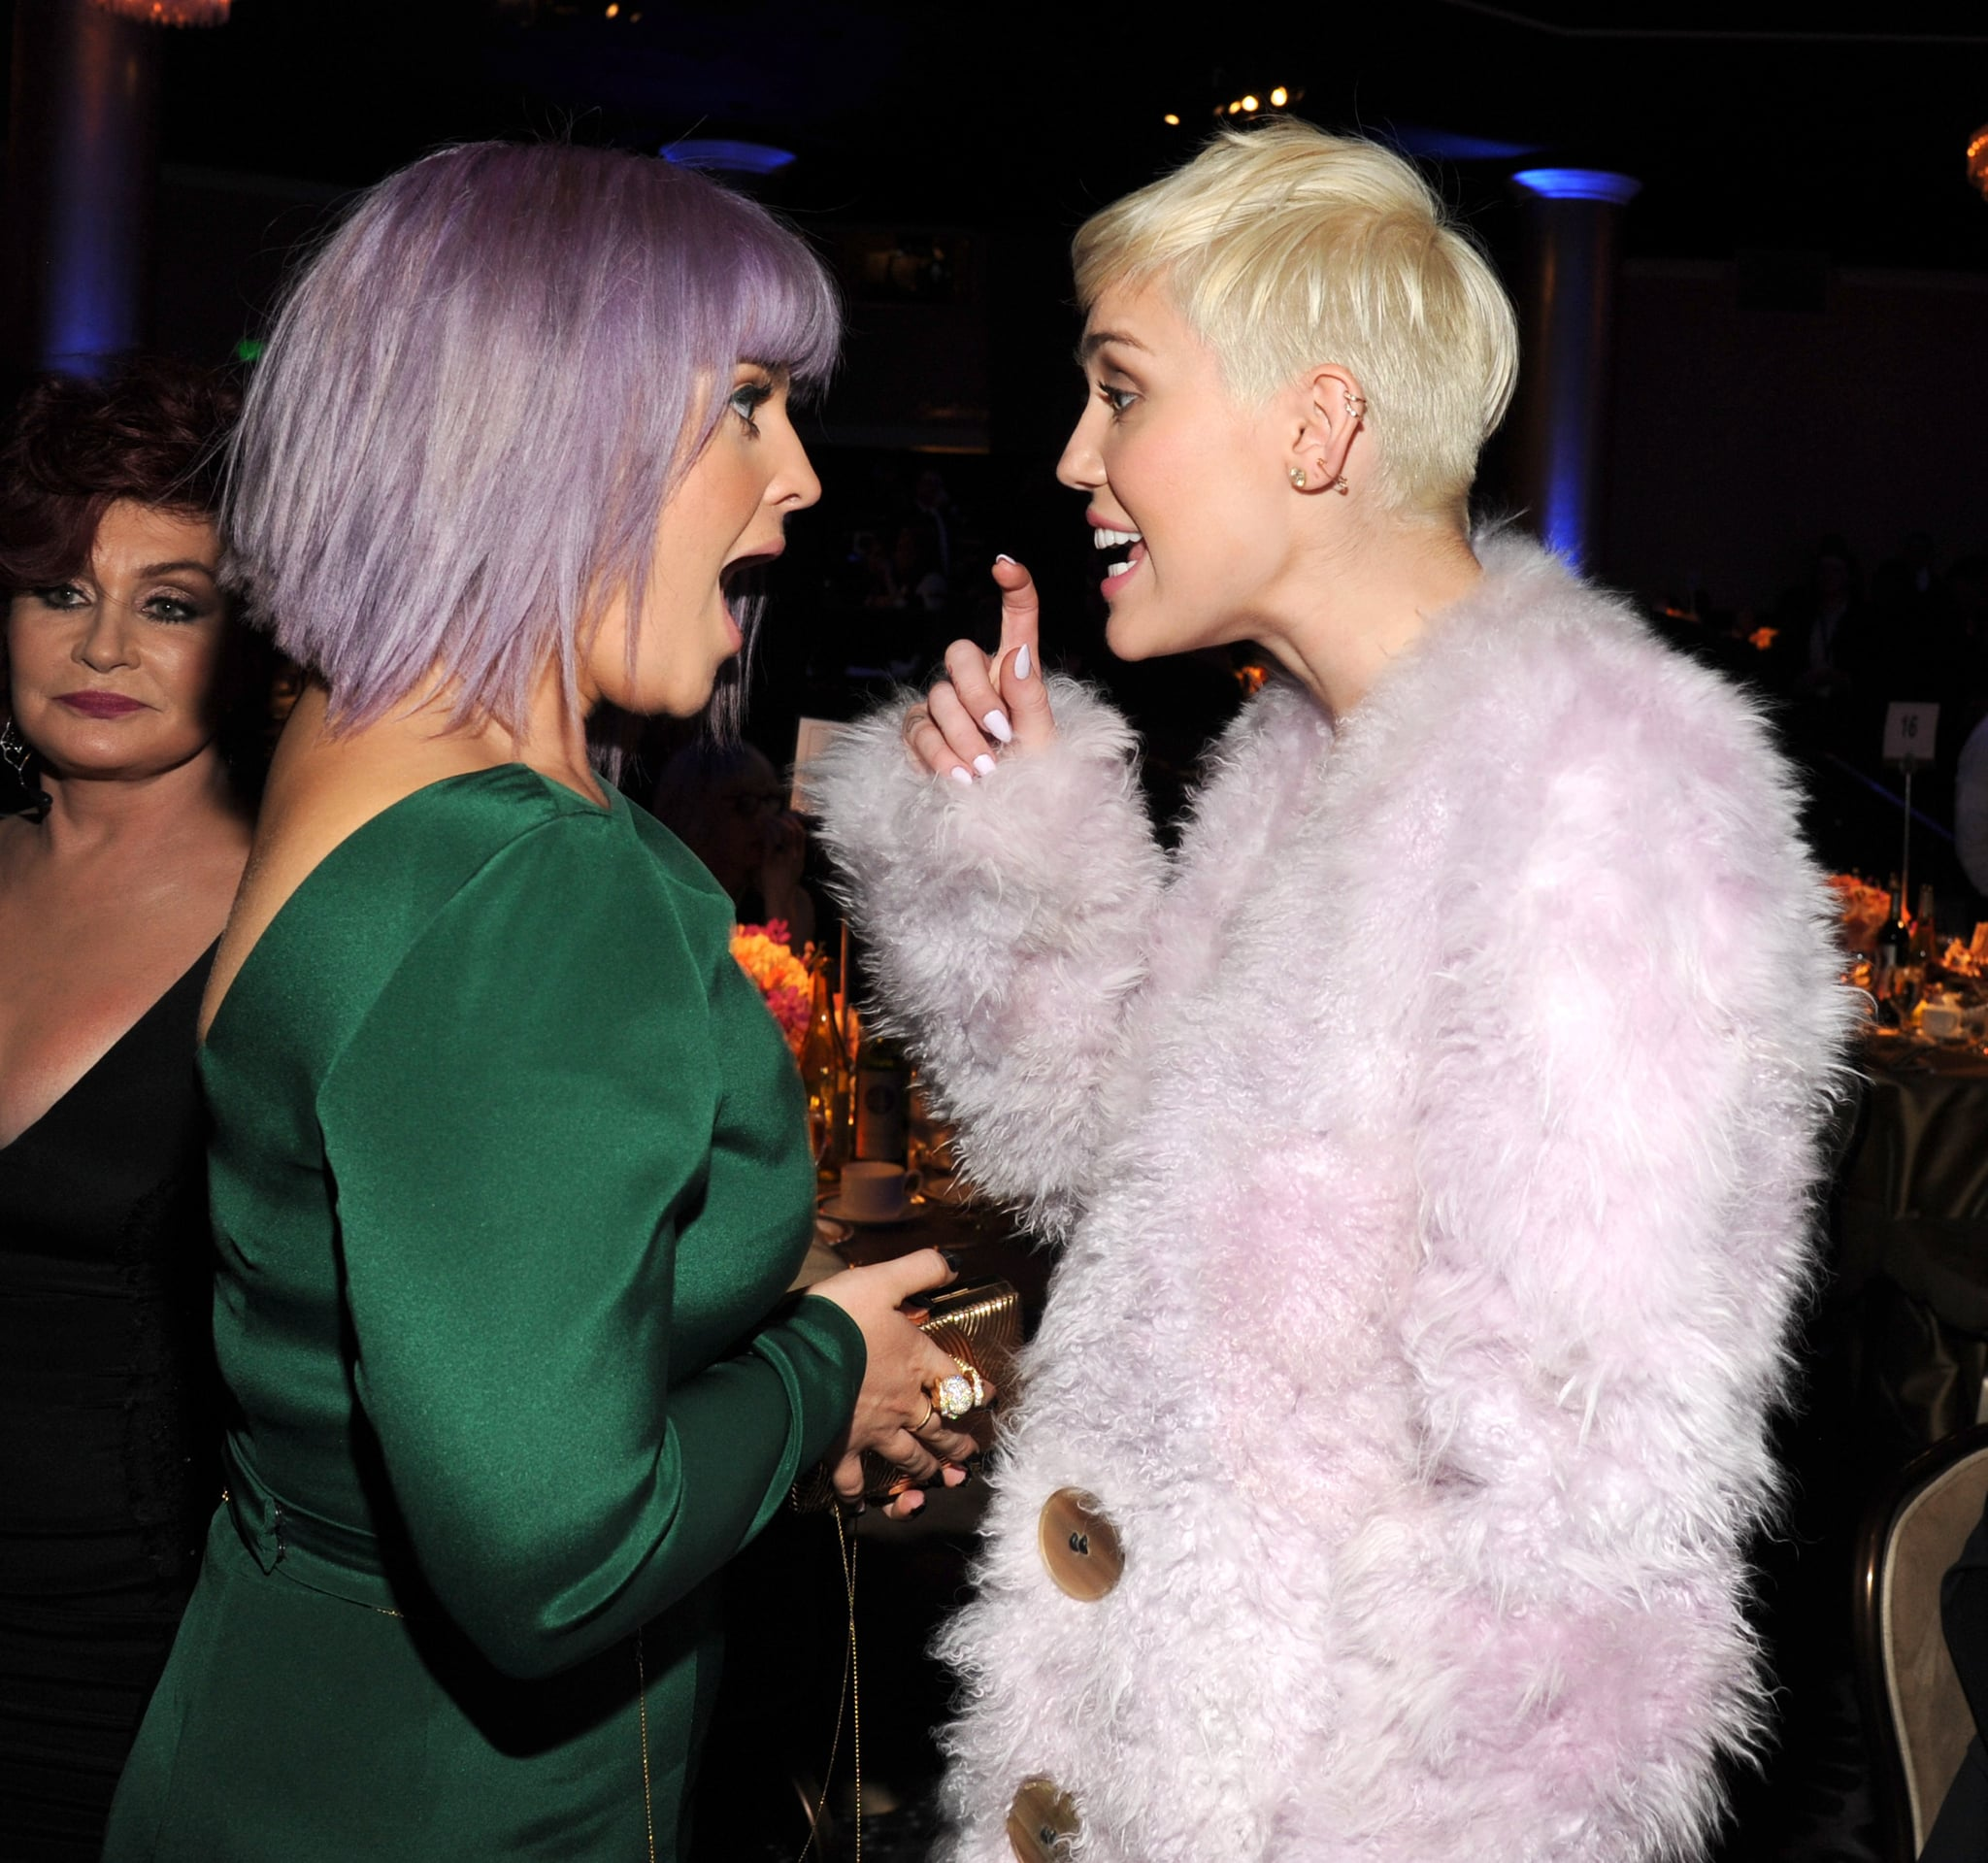 Miley Cyrus said something to make Kelly Osbourne's jaw drop at Clive Davis's annual pre-Grammys gala.